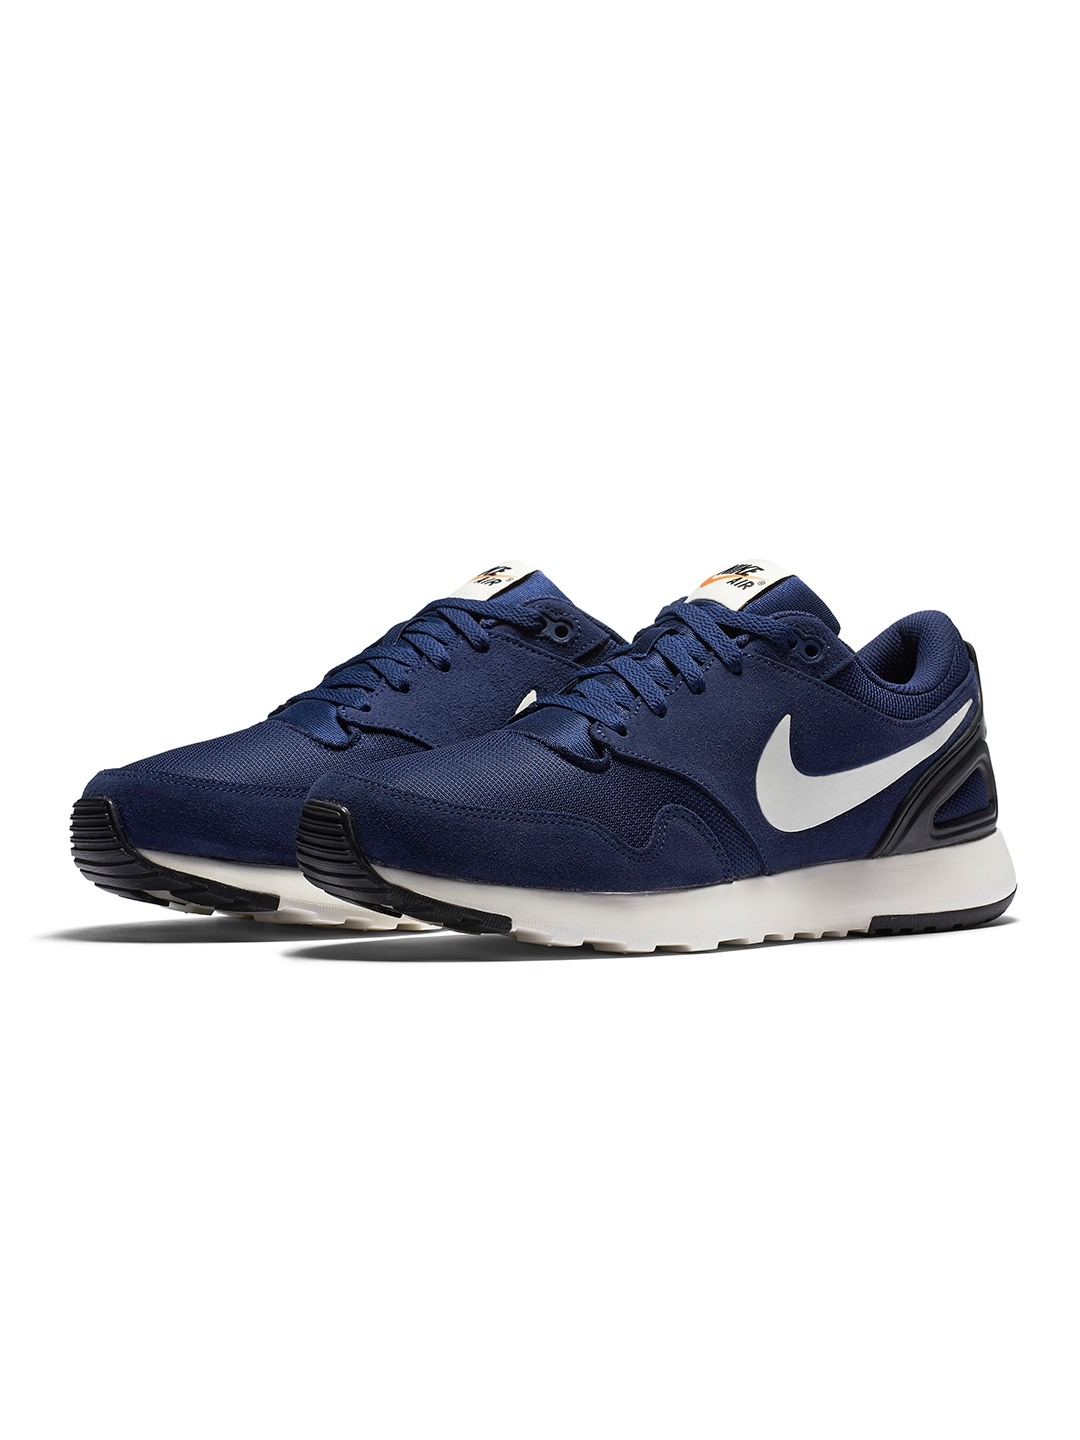 nike casual shoes blue white